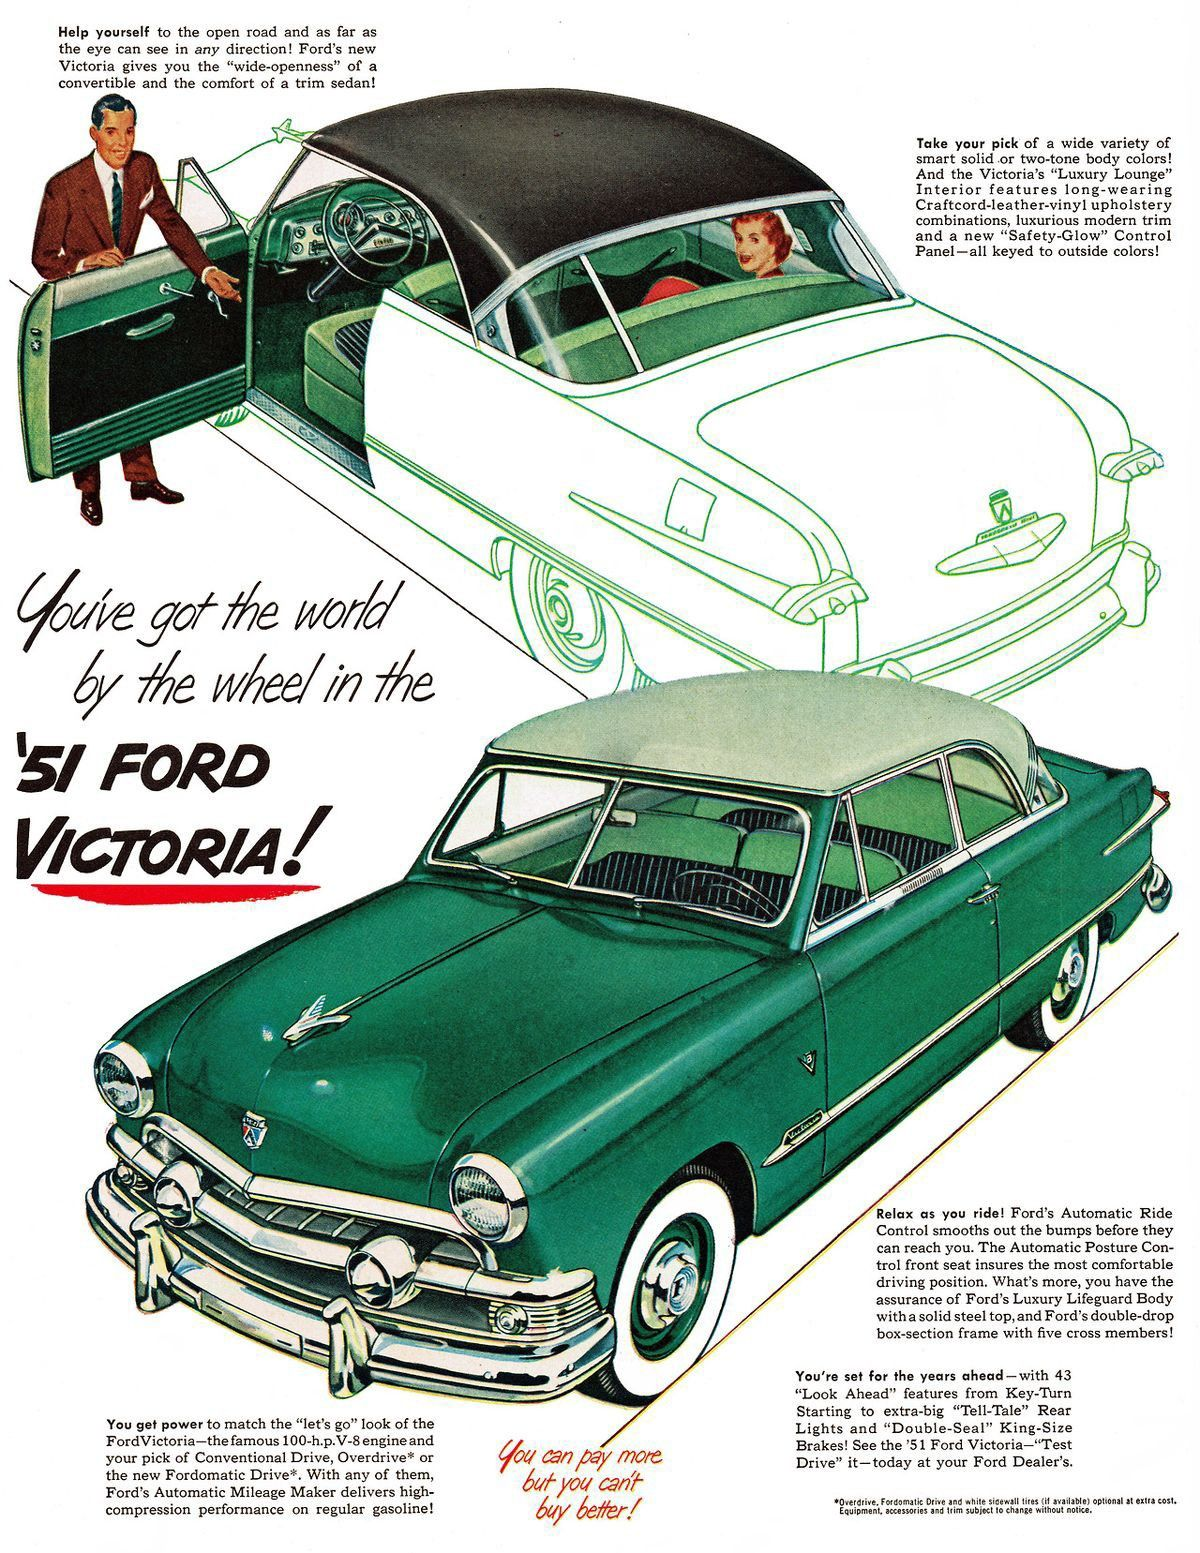 Pin by Rob Pearson on Ads & Art For Gearheads | Vintage cars